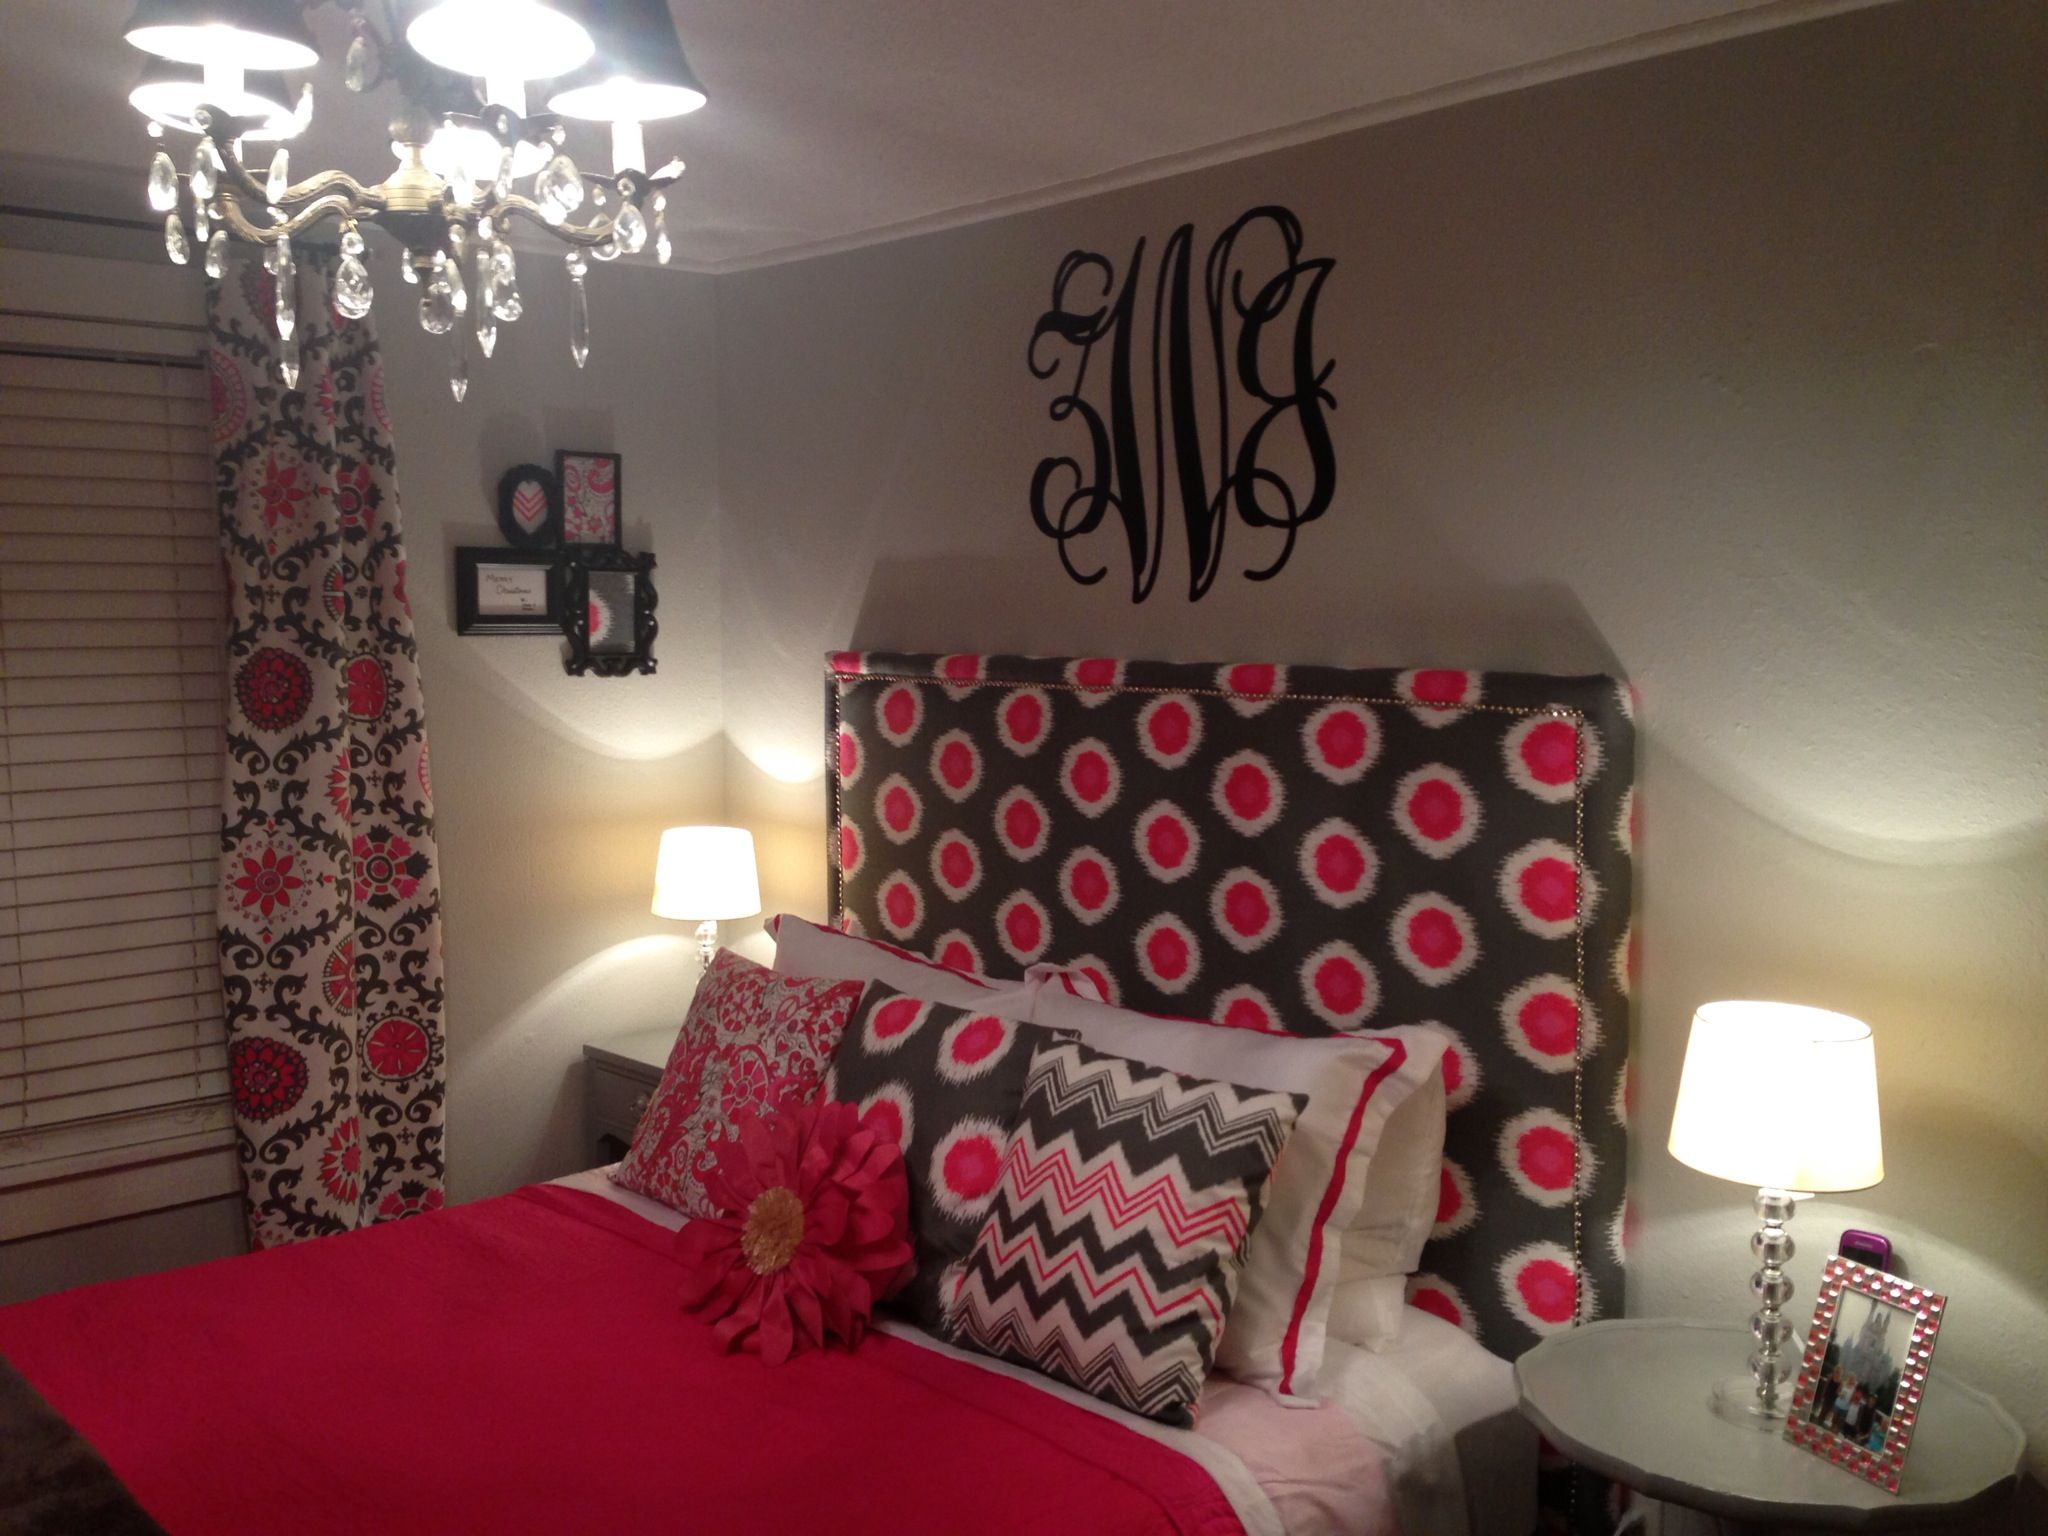 Room I Designed For My 11 Year Old Sister Turned Out Great Teenage Bedroom Ideas Ikea Old Room Girls Bedroom